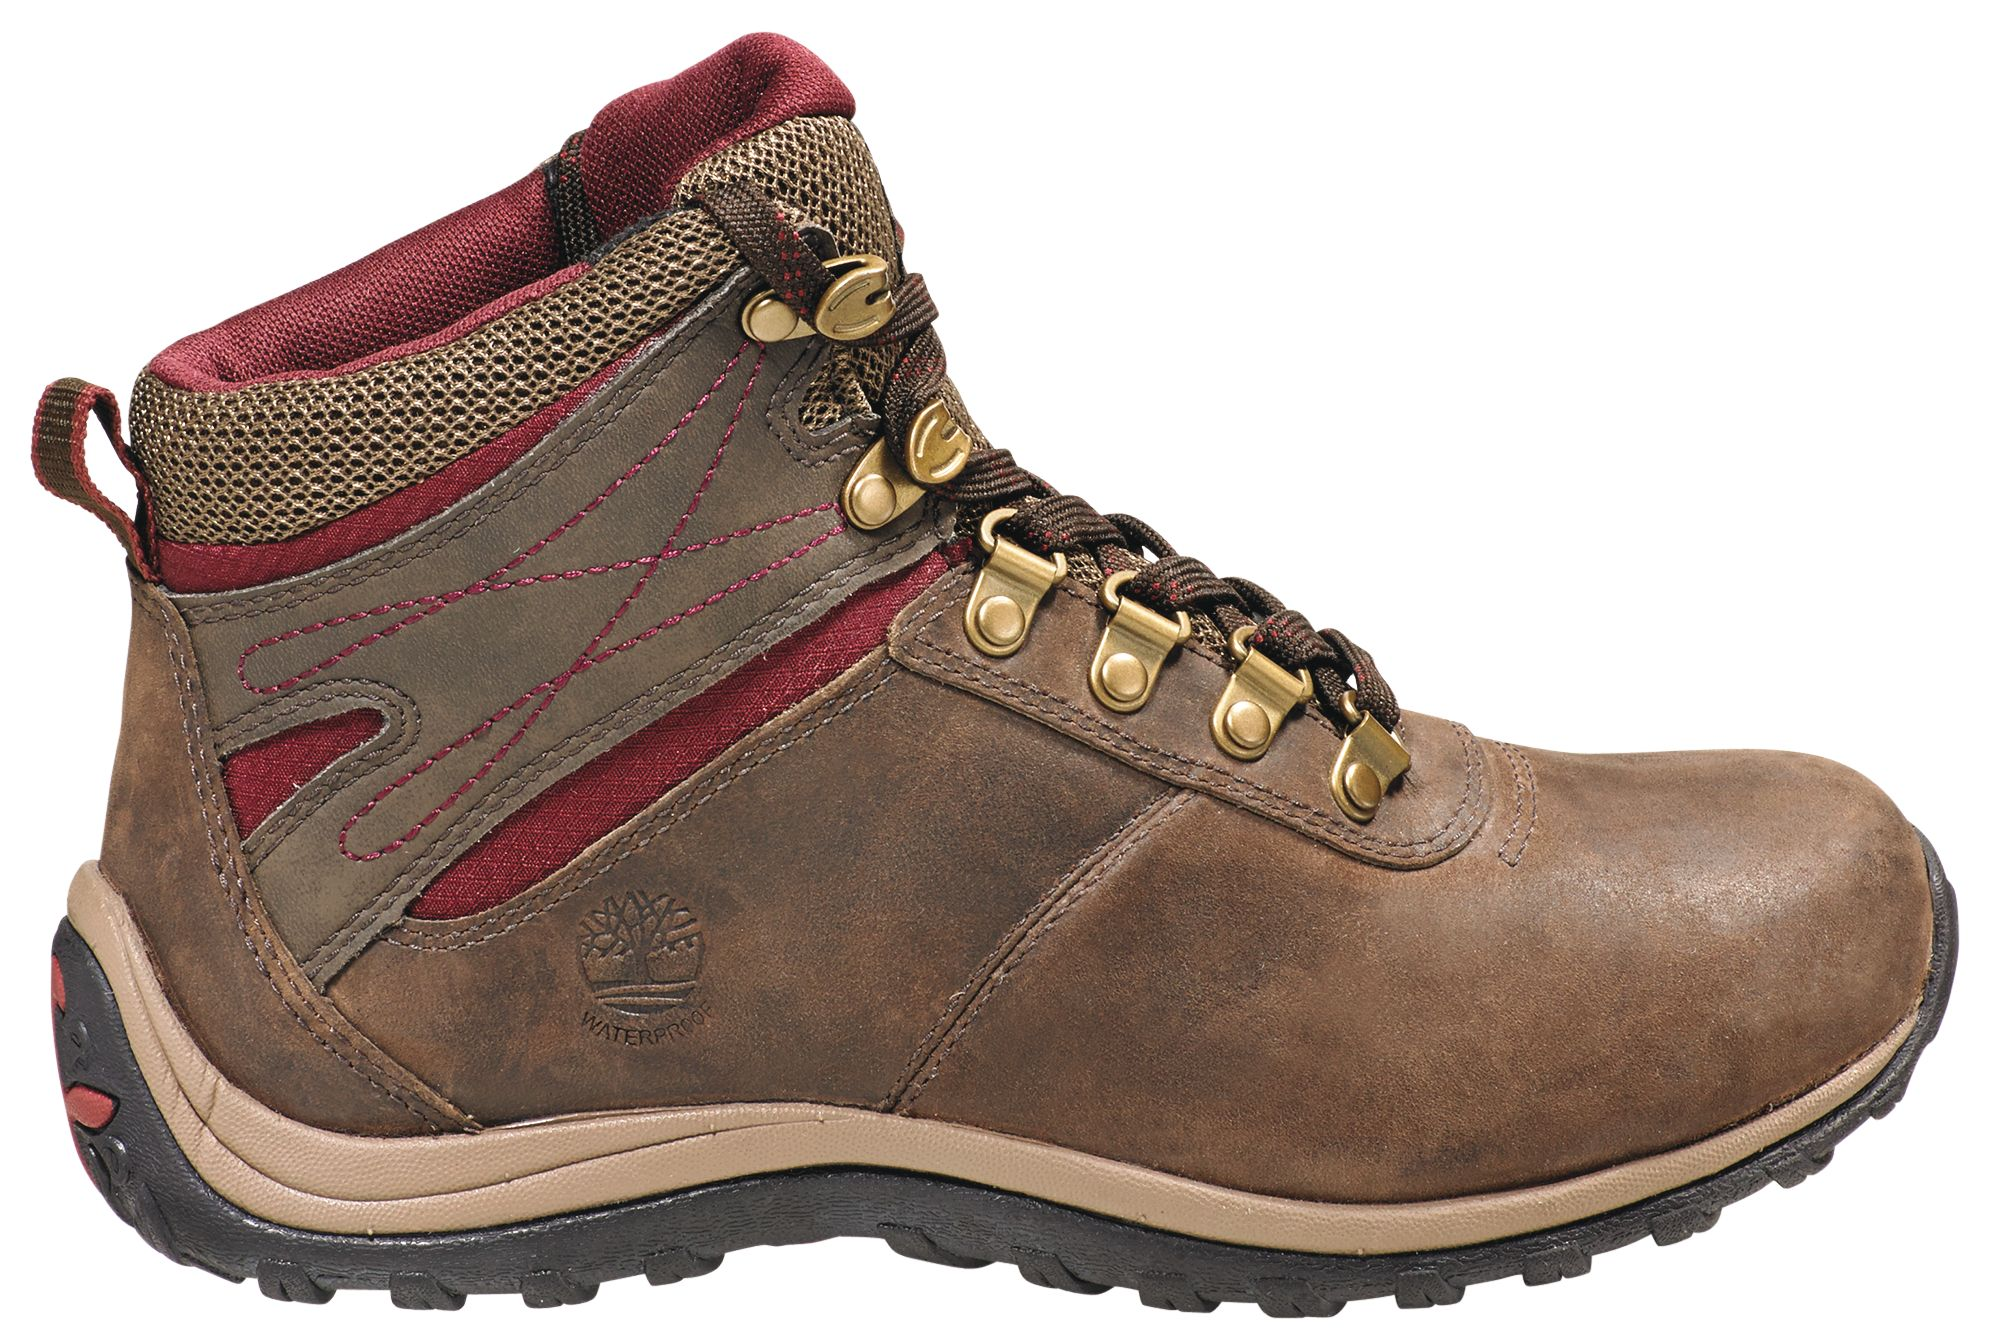 Brilliant Timberland White Ledge Waterproof Mid Hiking Boots - Womens